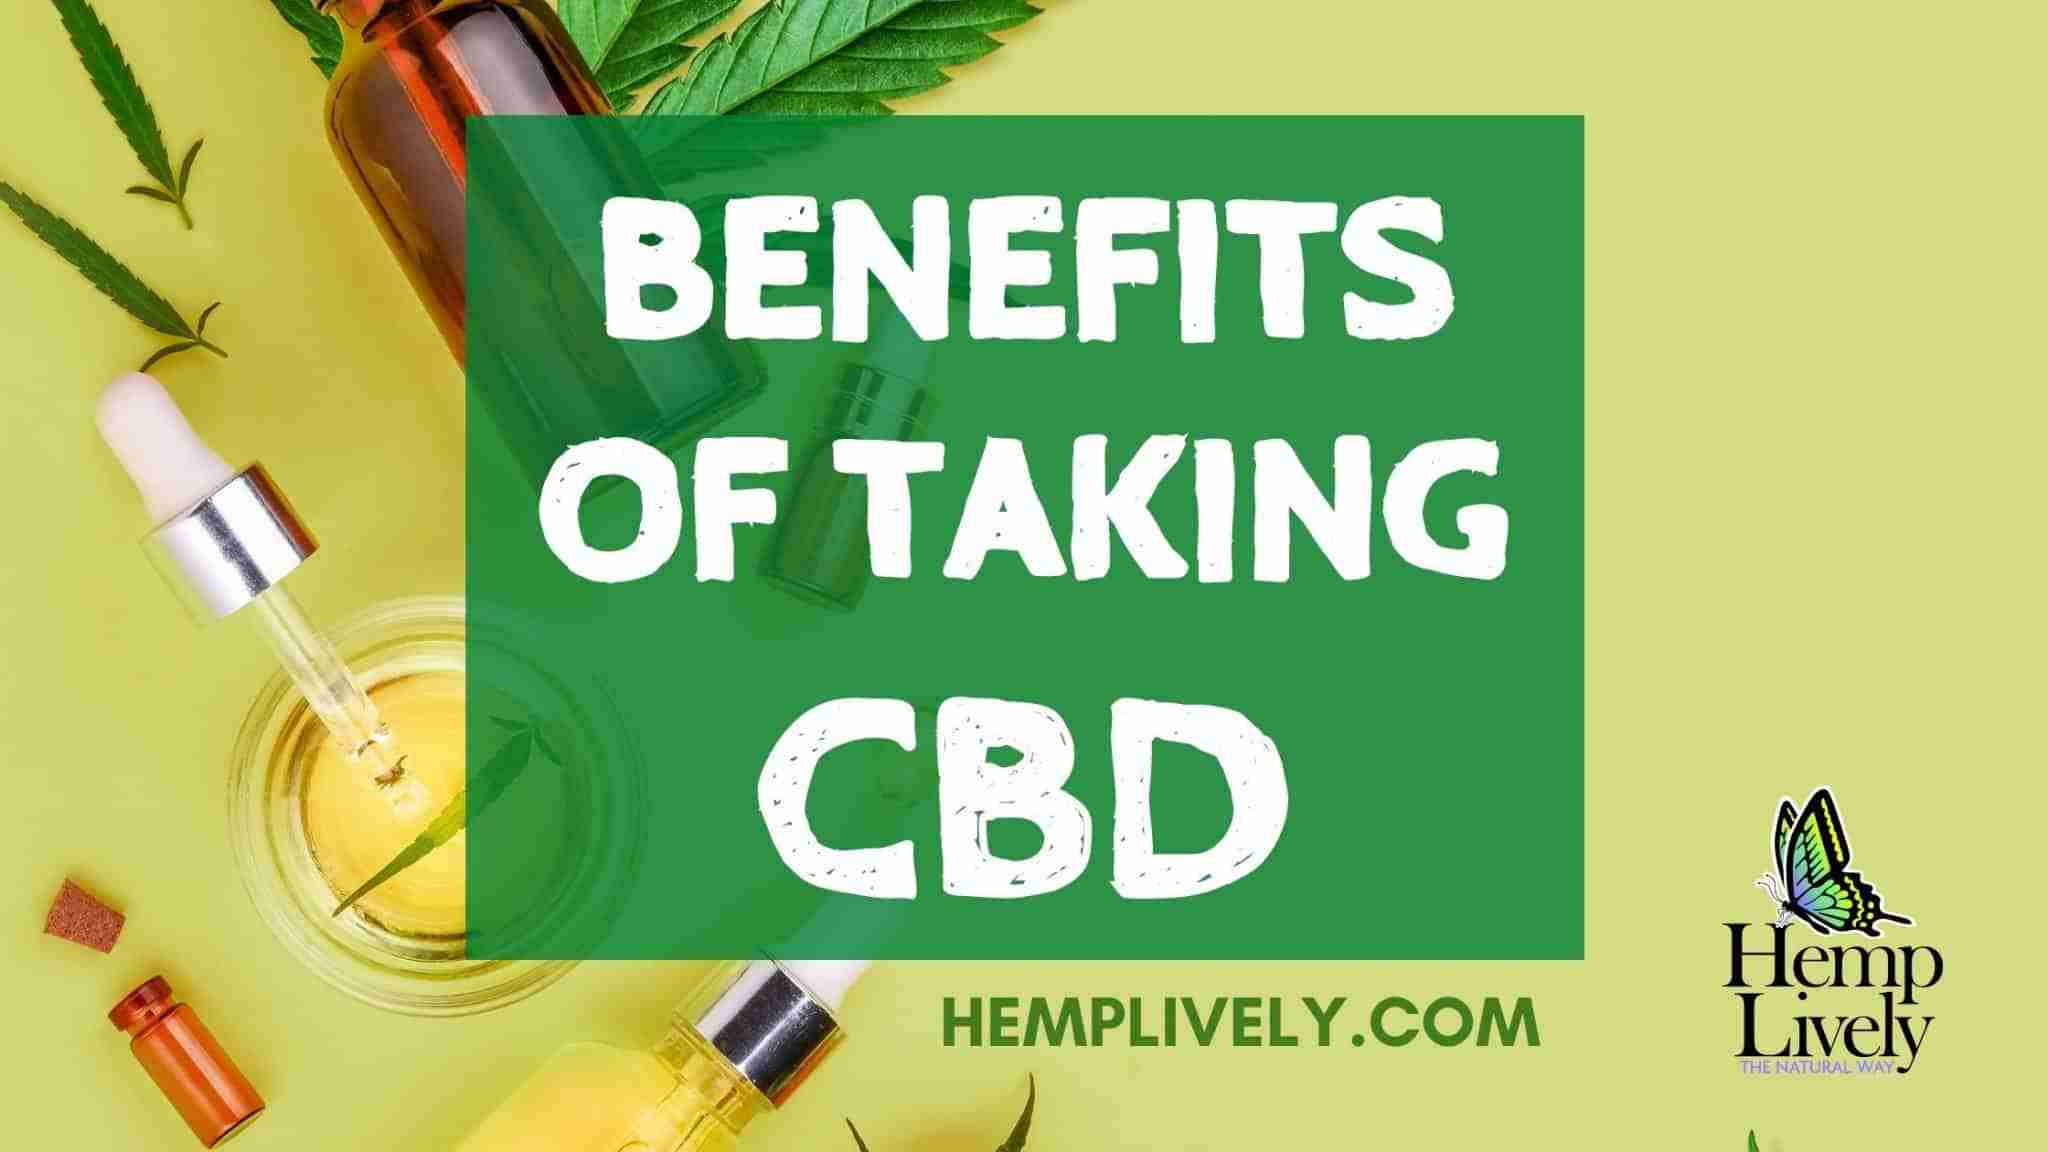 What Are the Benefits of Taking CBD?